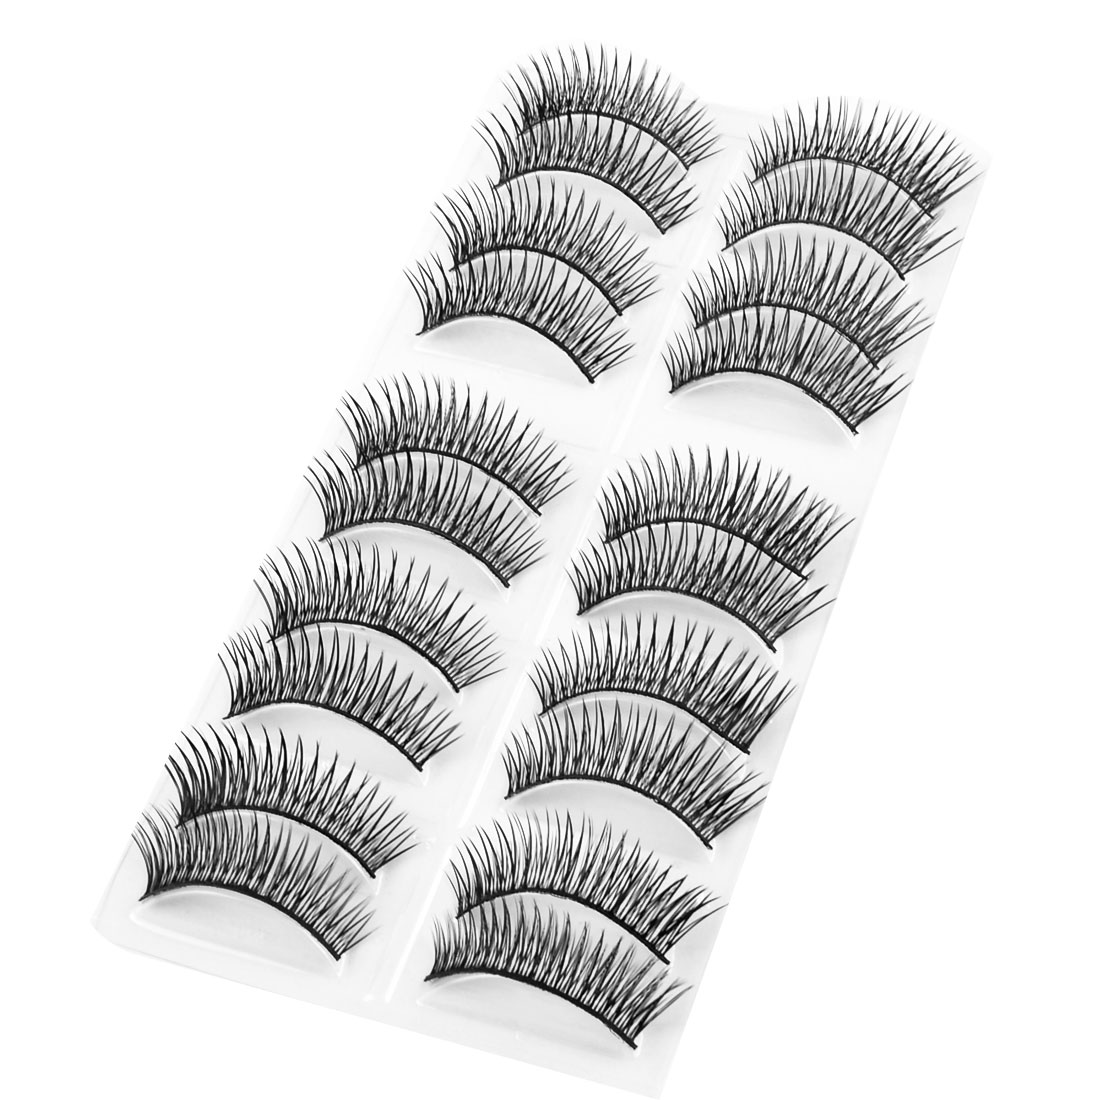 Long Thick False Eyelashes Fake Lashes Extension 10 Pairs